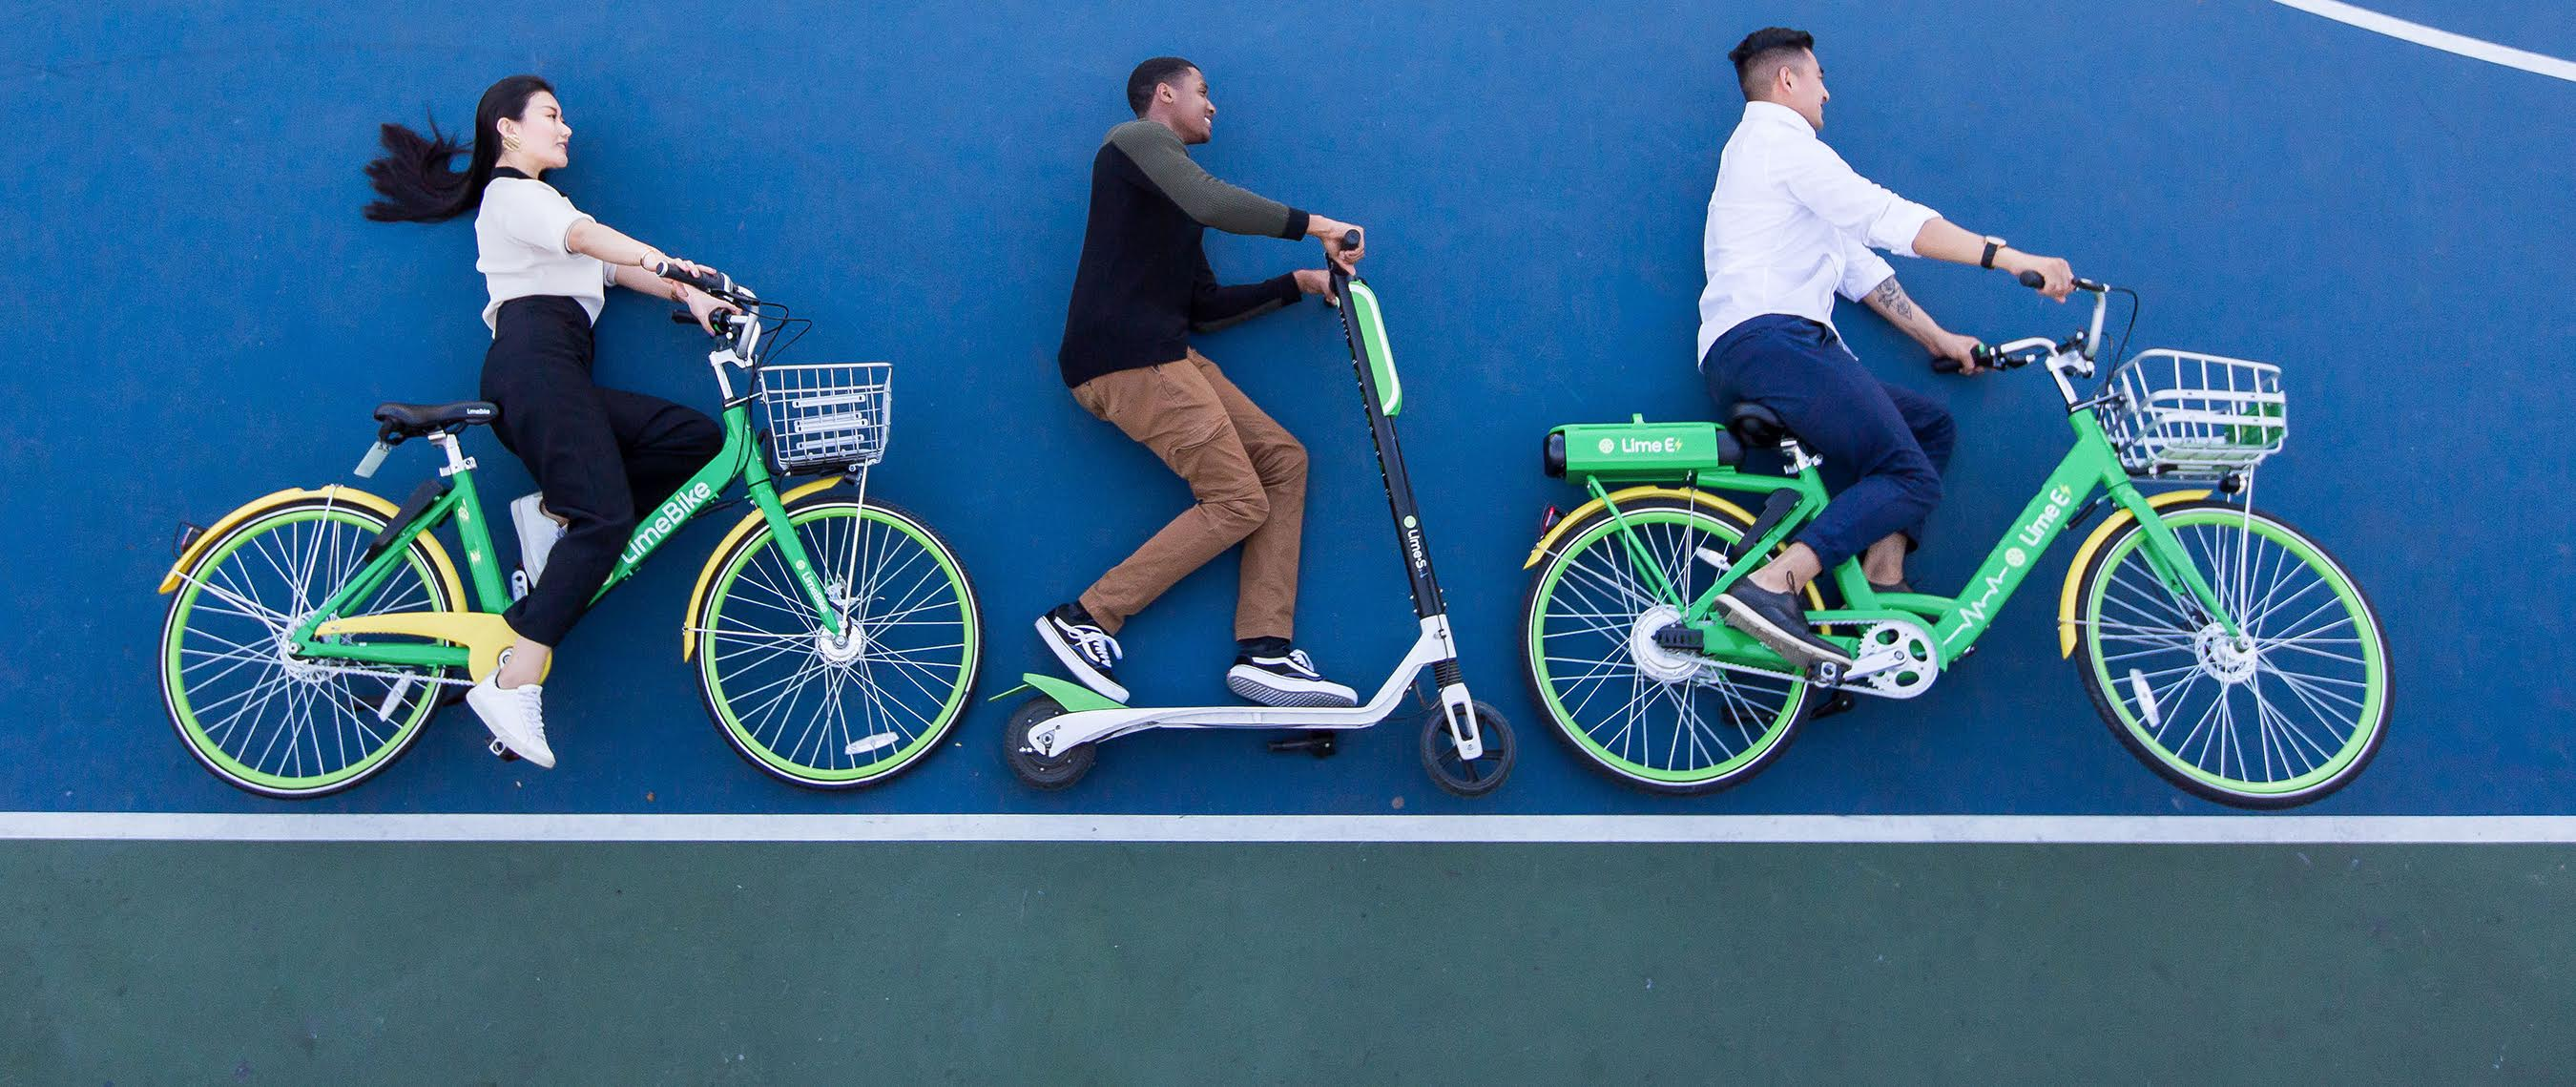 A picture of people on Lime's scooters and bikes